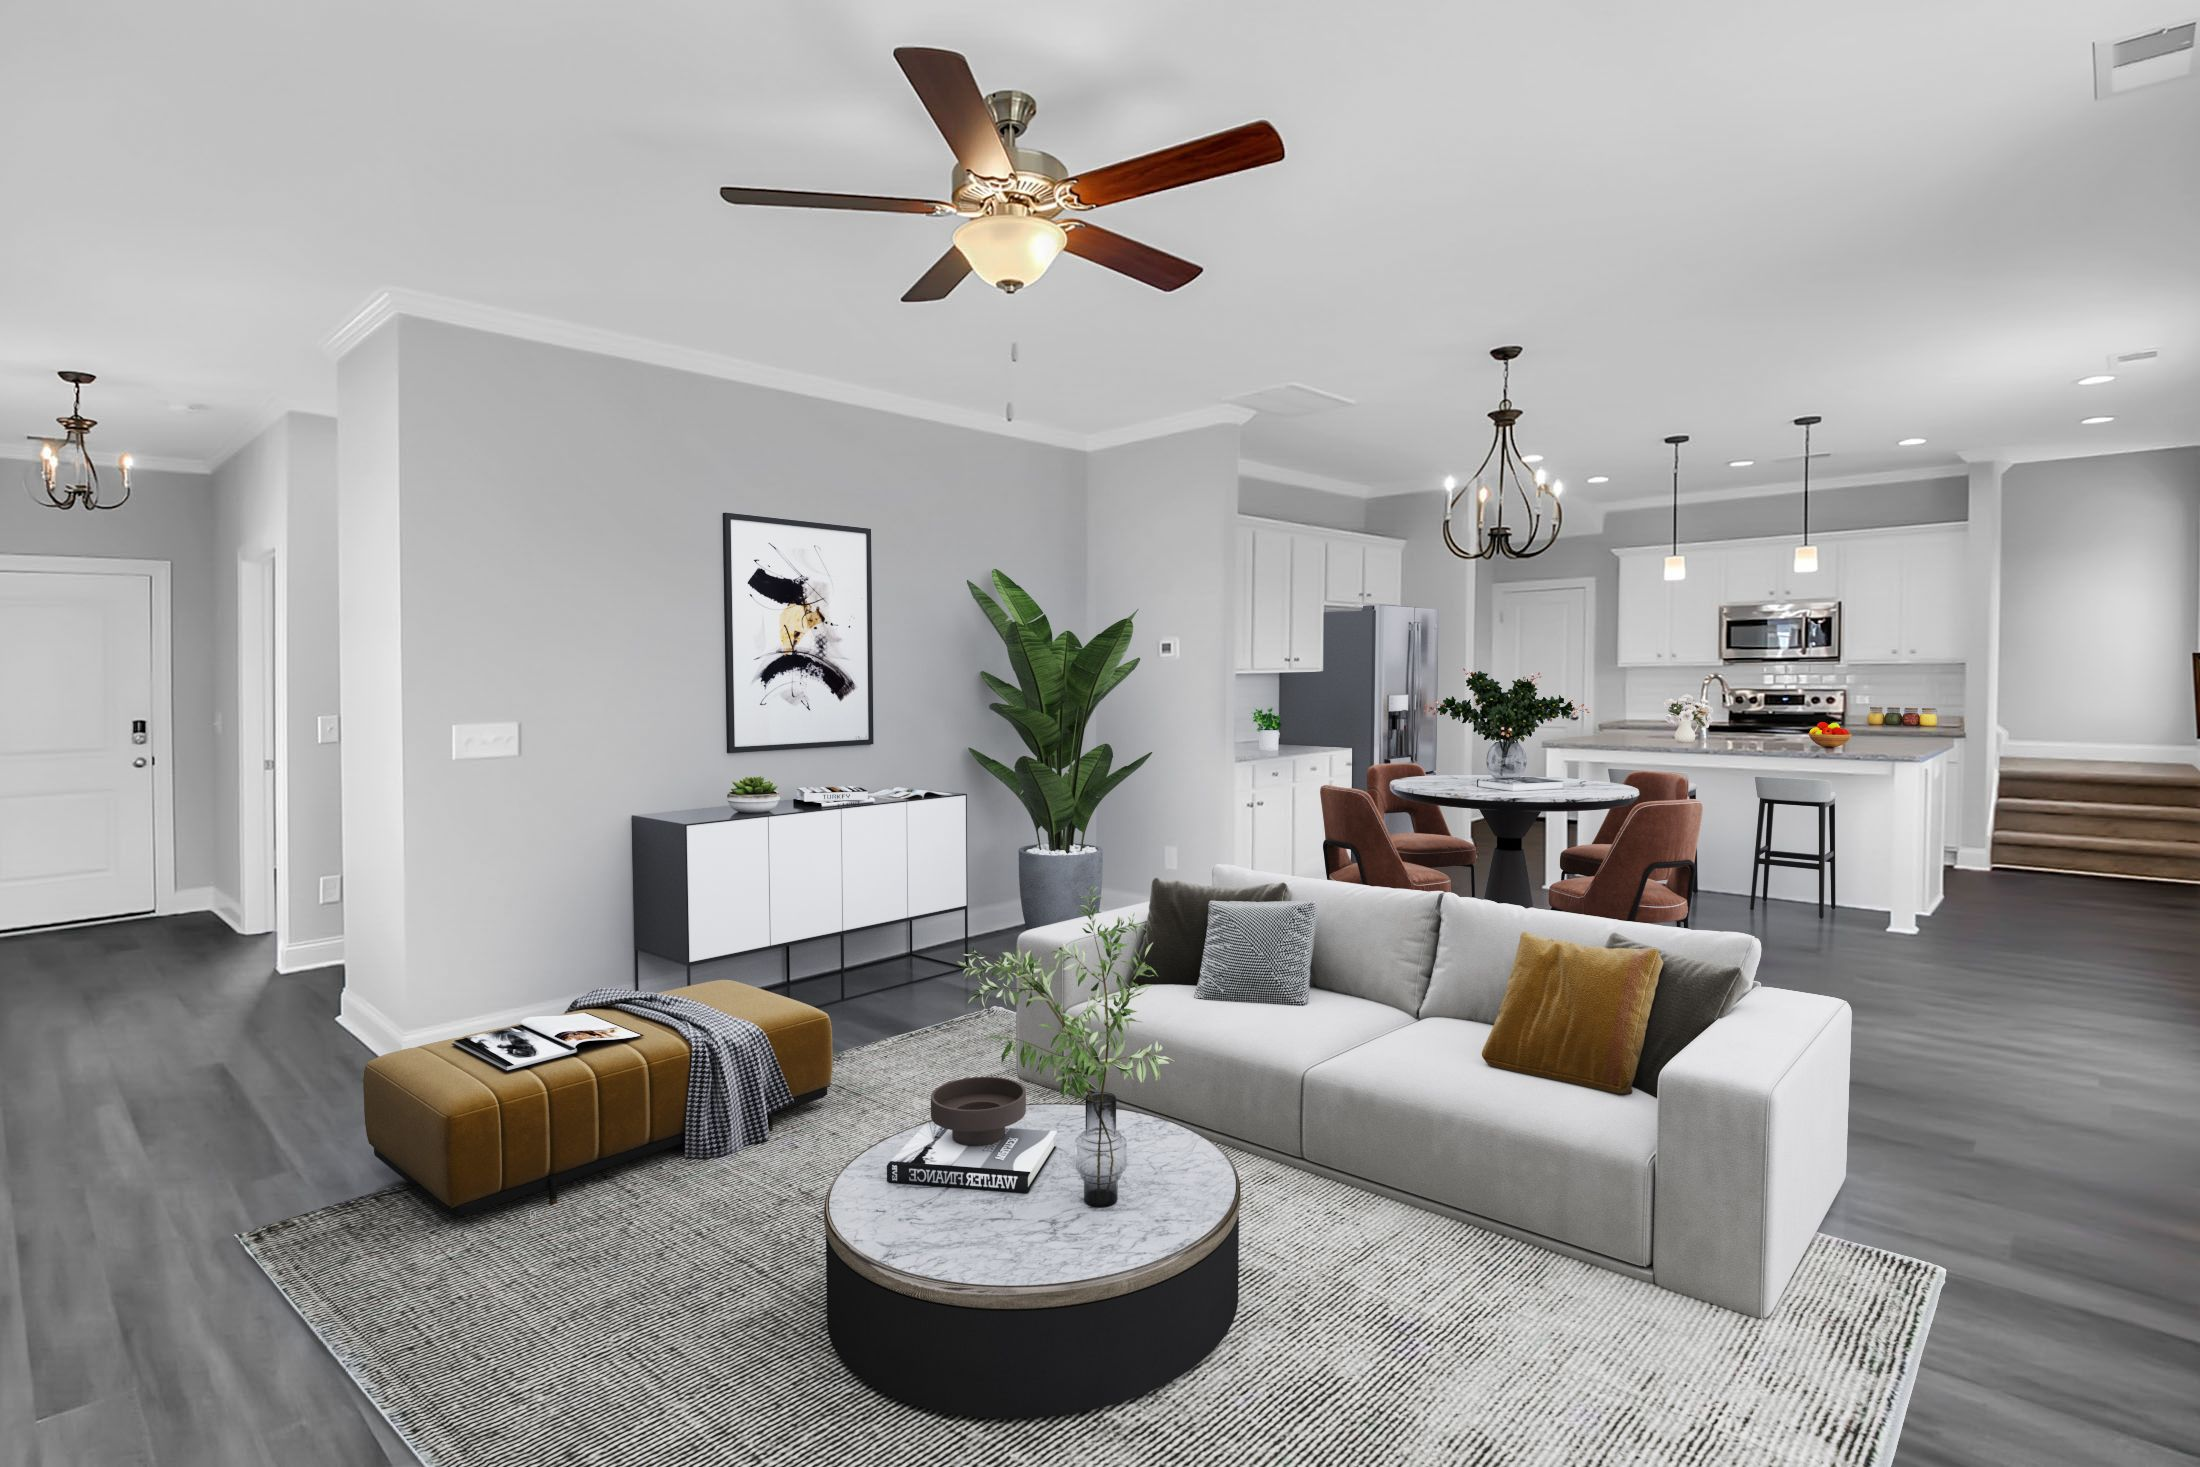 Living Area featured in the Sparrow Sidney Walk By Executive Construction Homes in Columbia, SC